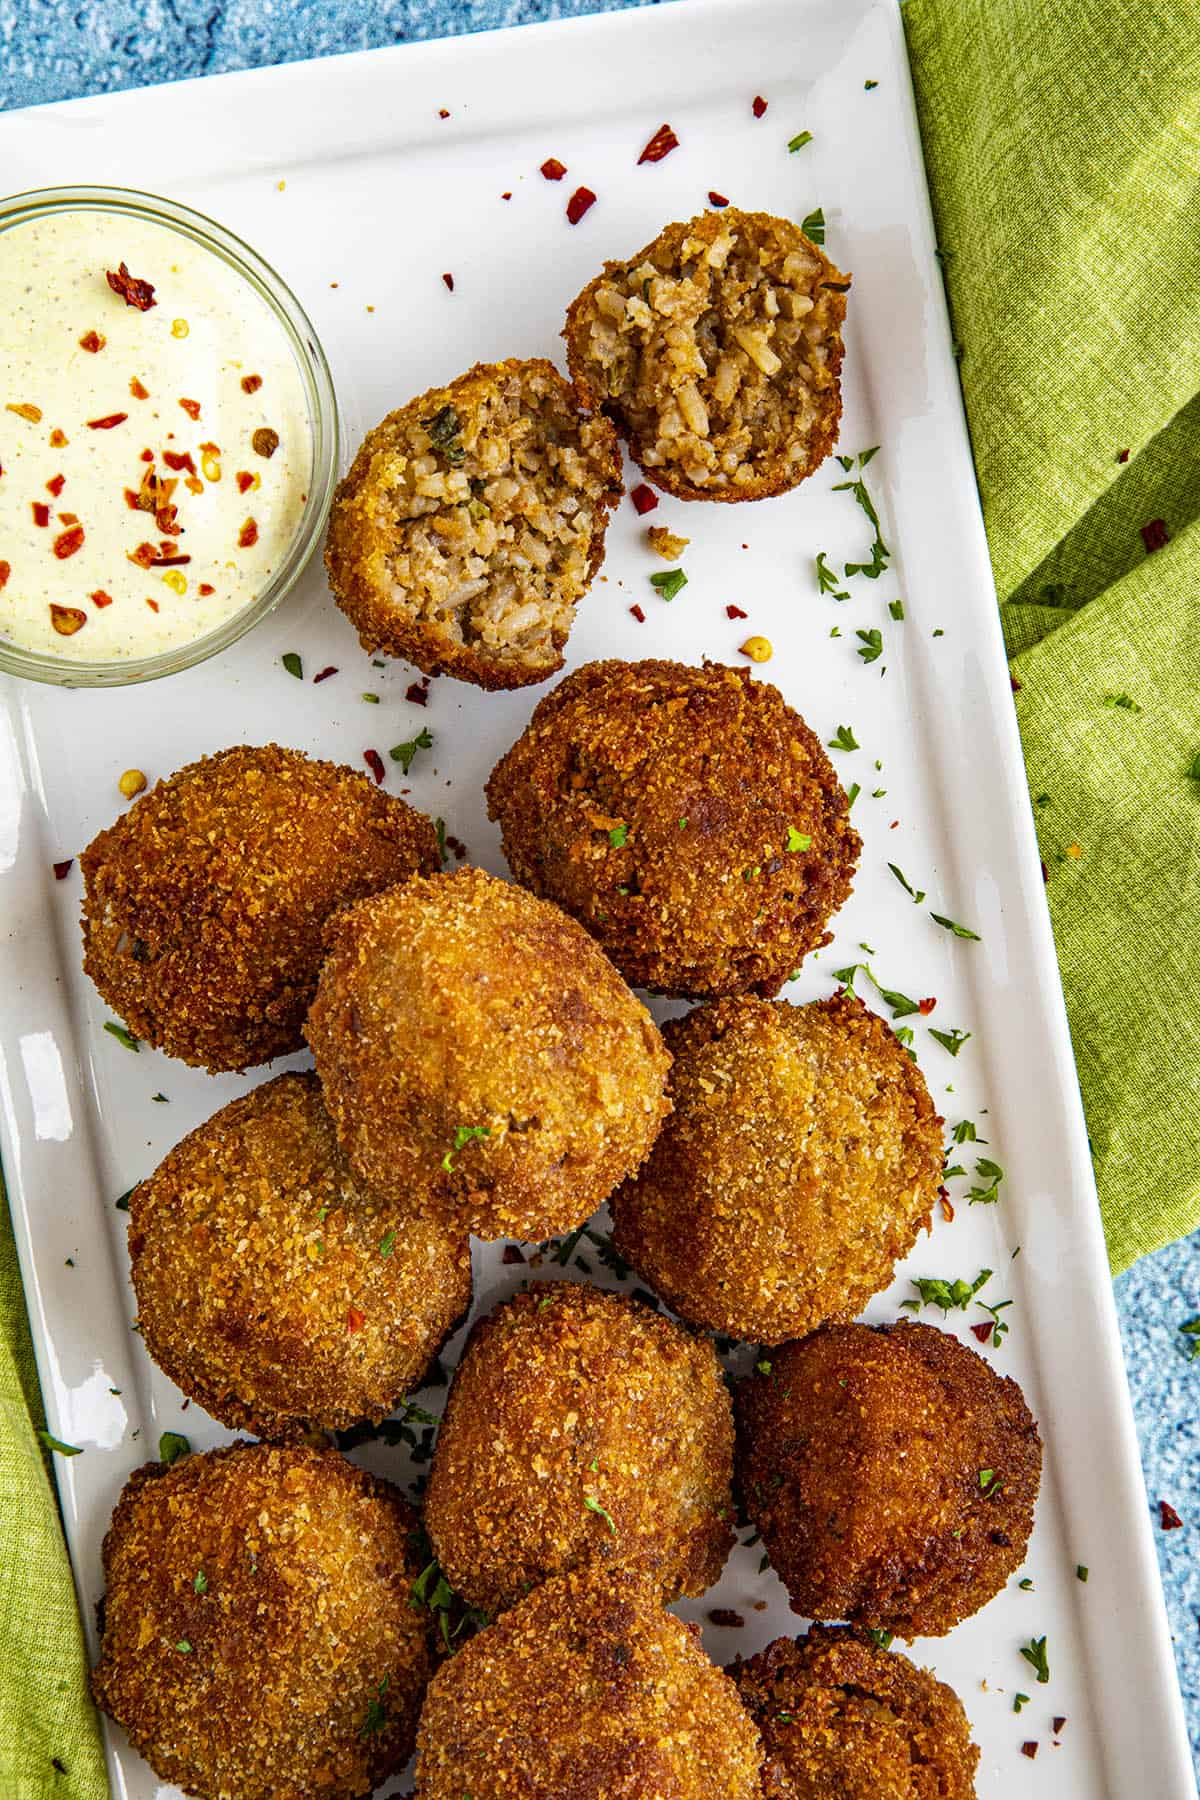 Boudin balls on a plate